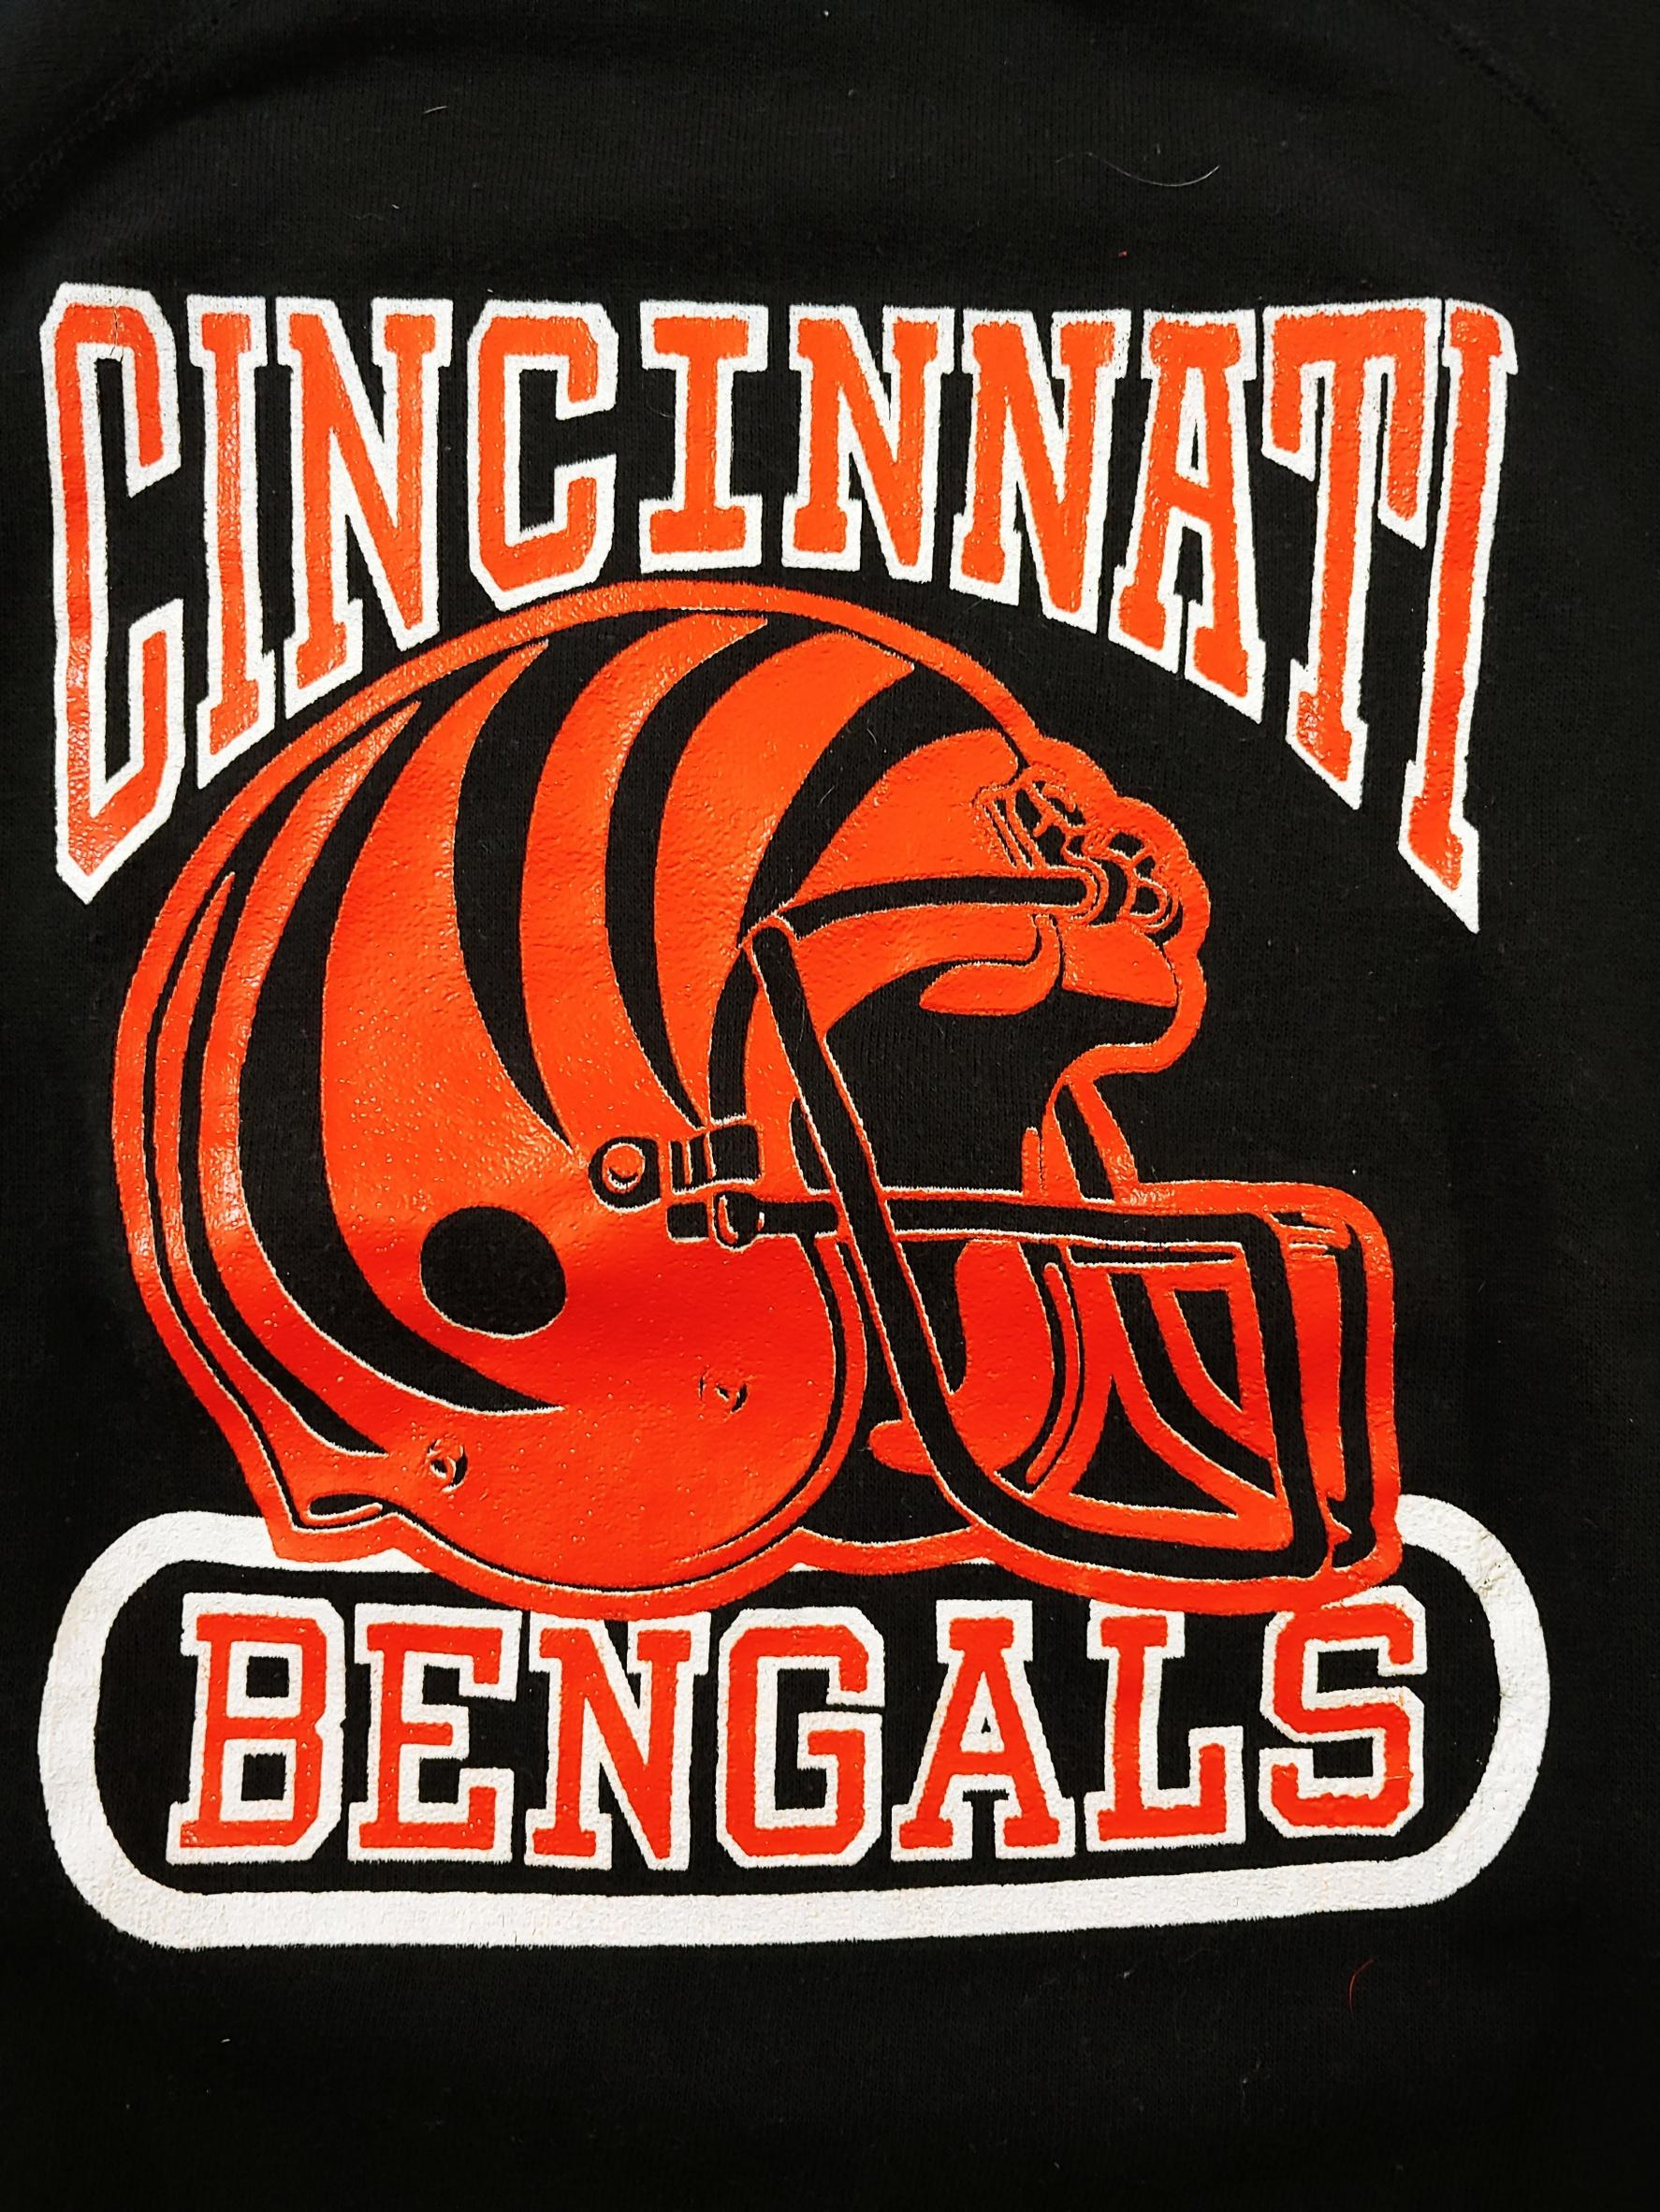 Cincinnati Bengals Vintage Football Sweater Sz M